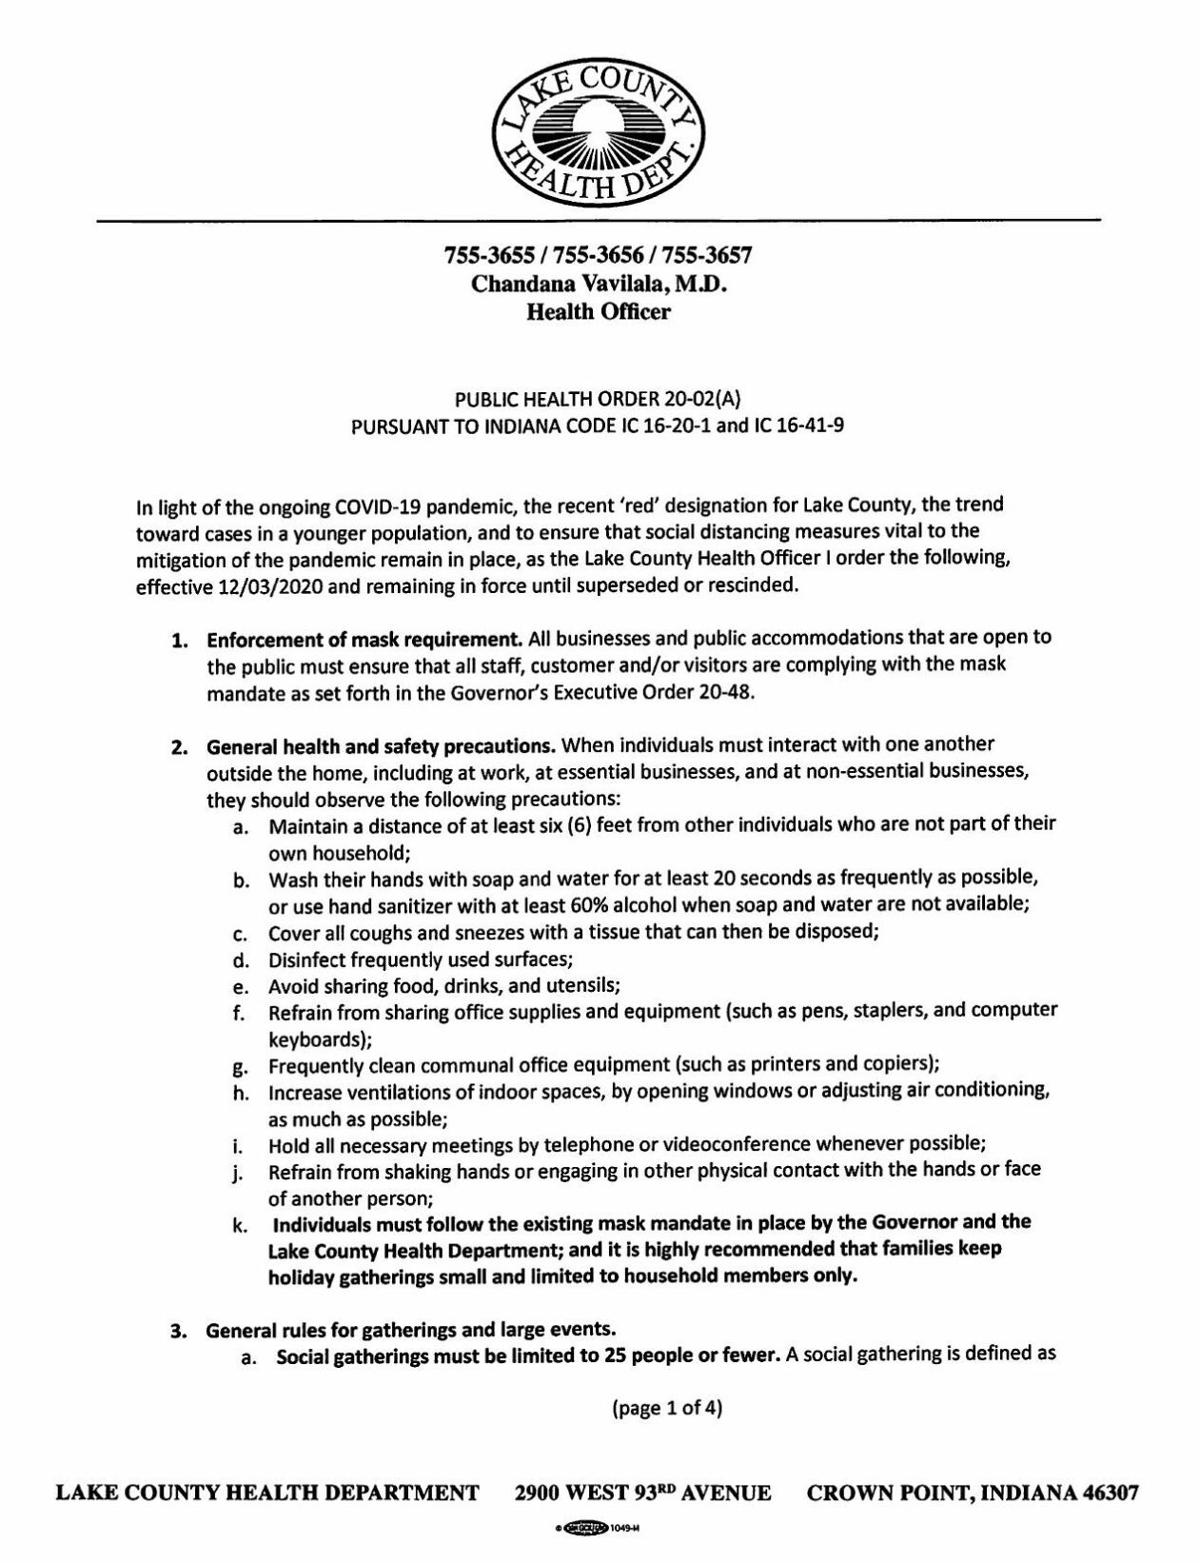 Lake County Public Health Order 20-02 (revised 12/3/20)